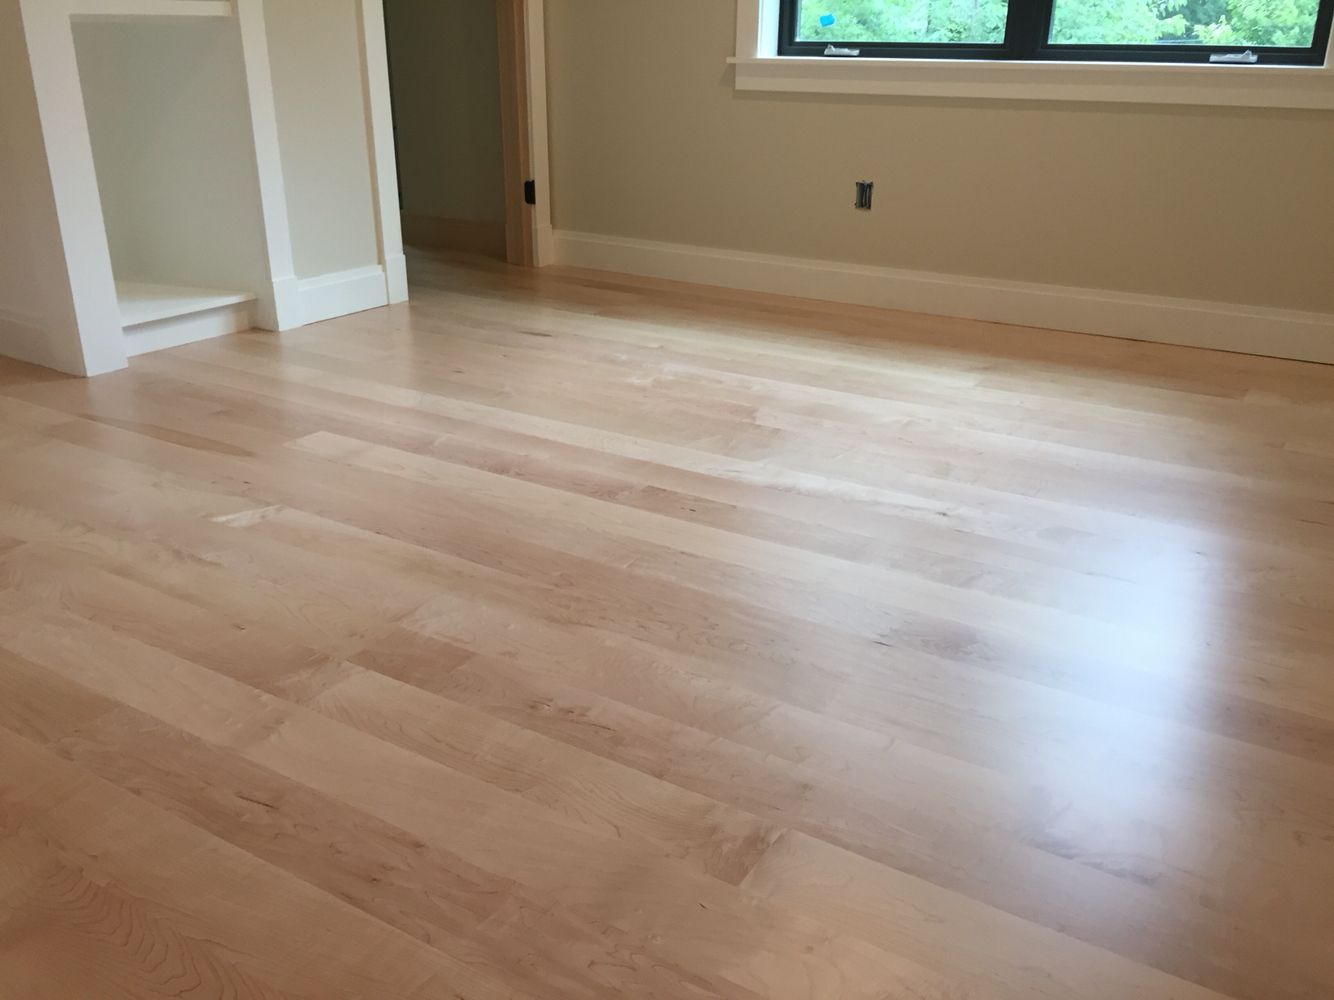 Locally Milled 5 Maple Floors Finished With Bona Bonaseal And Bona Traffix Hd Extra Matte Maple Floors Flooring Flooring Projects